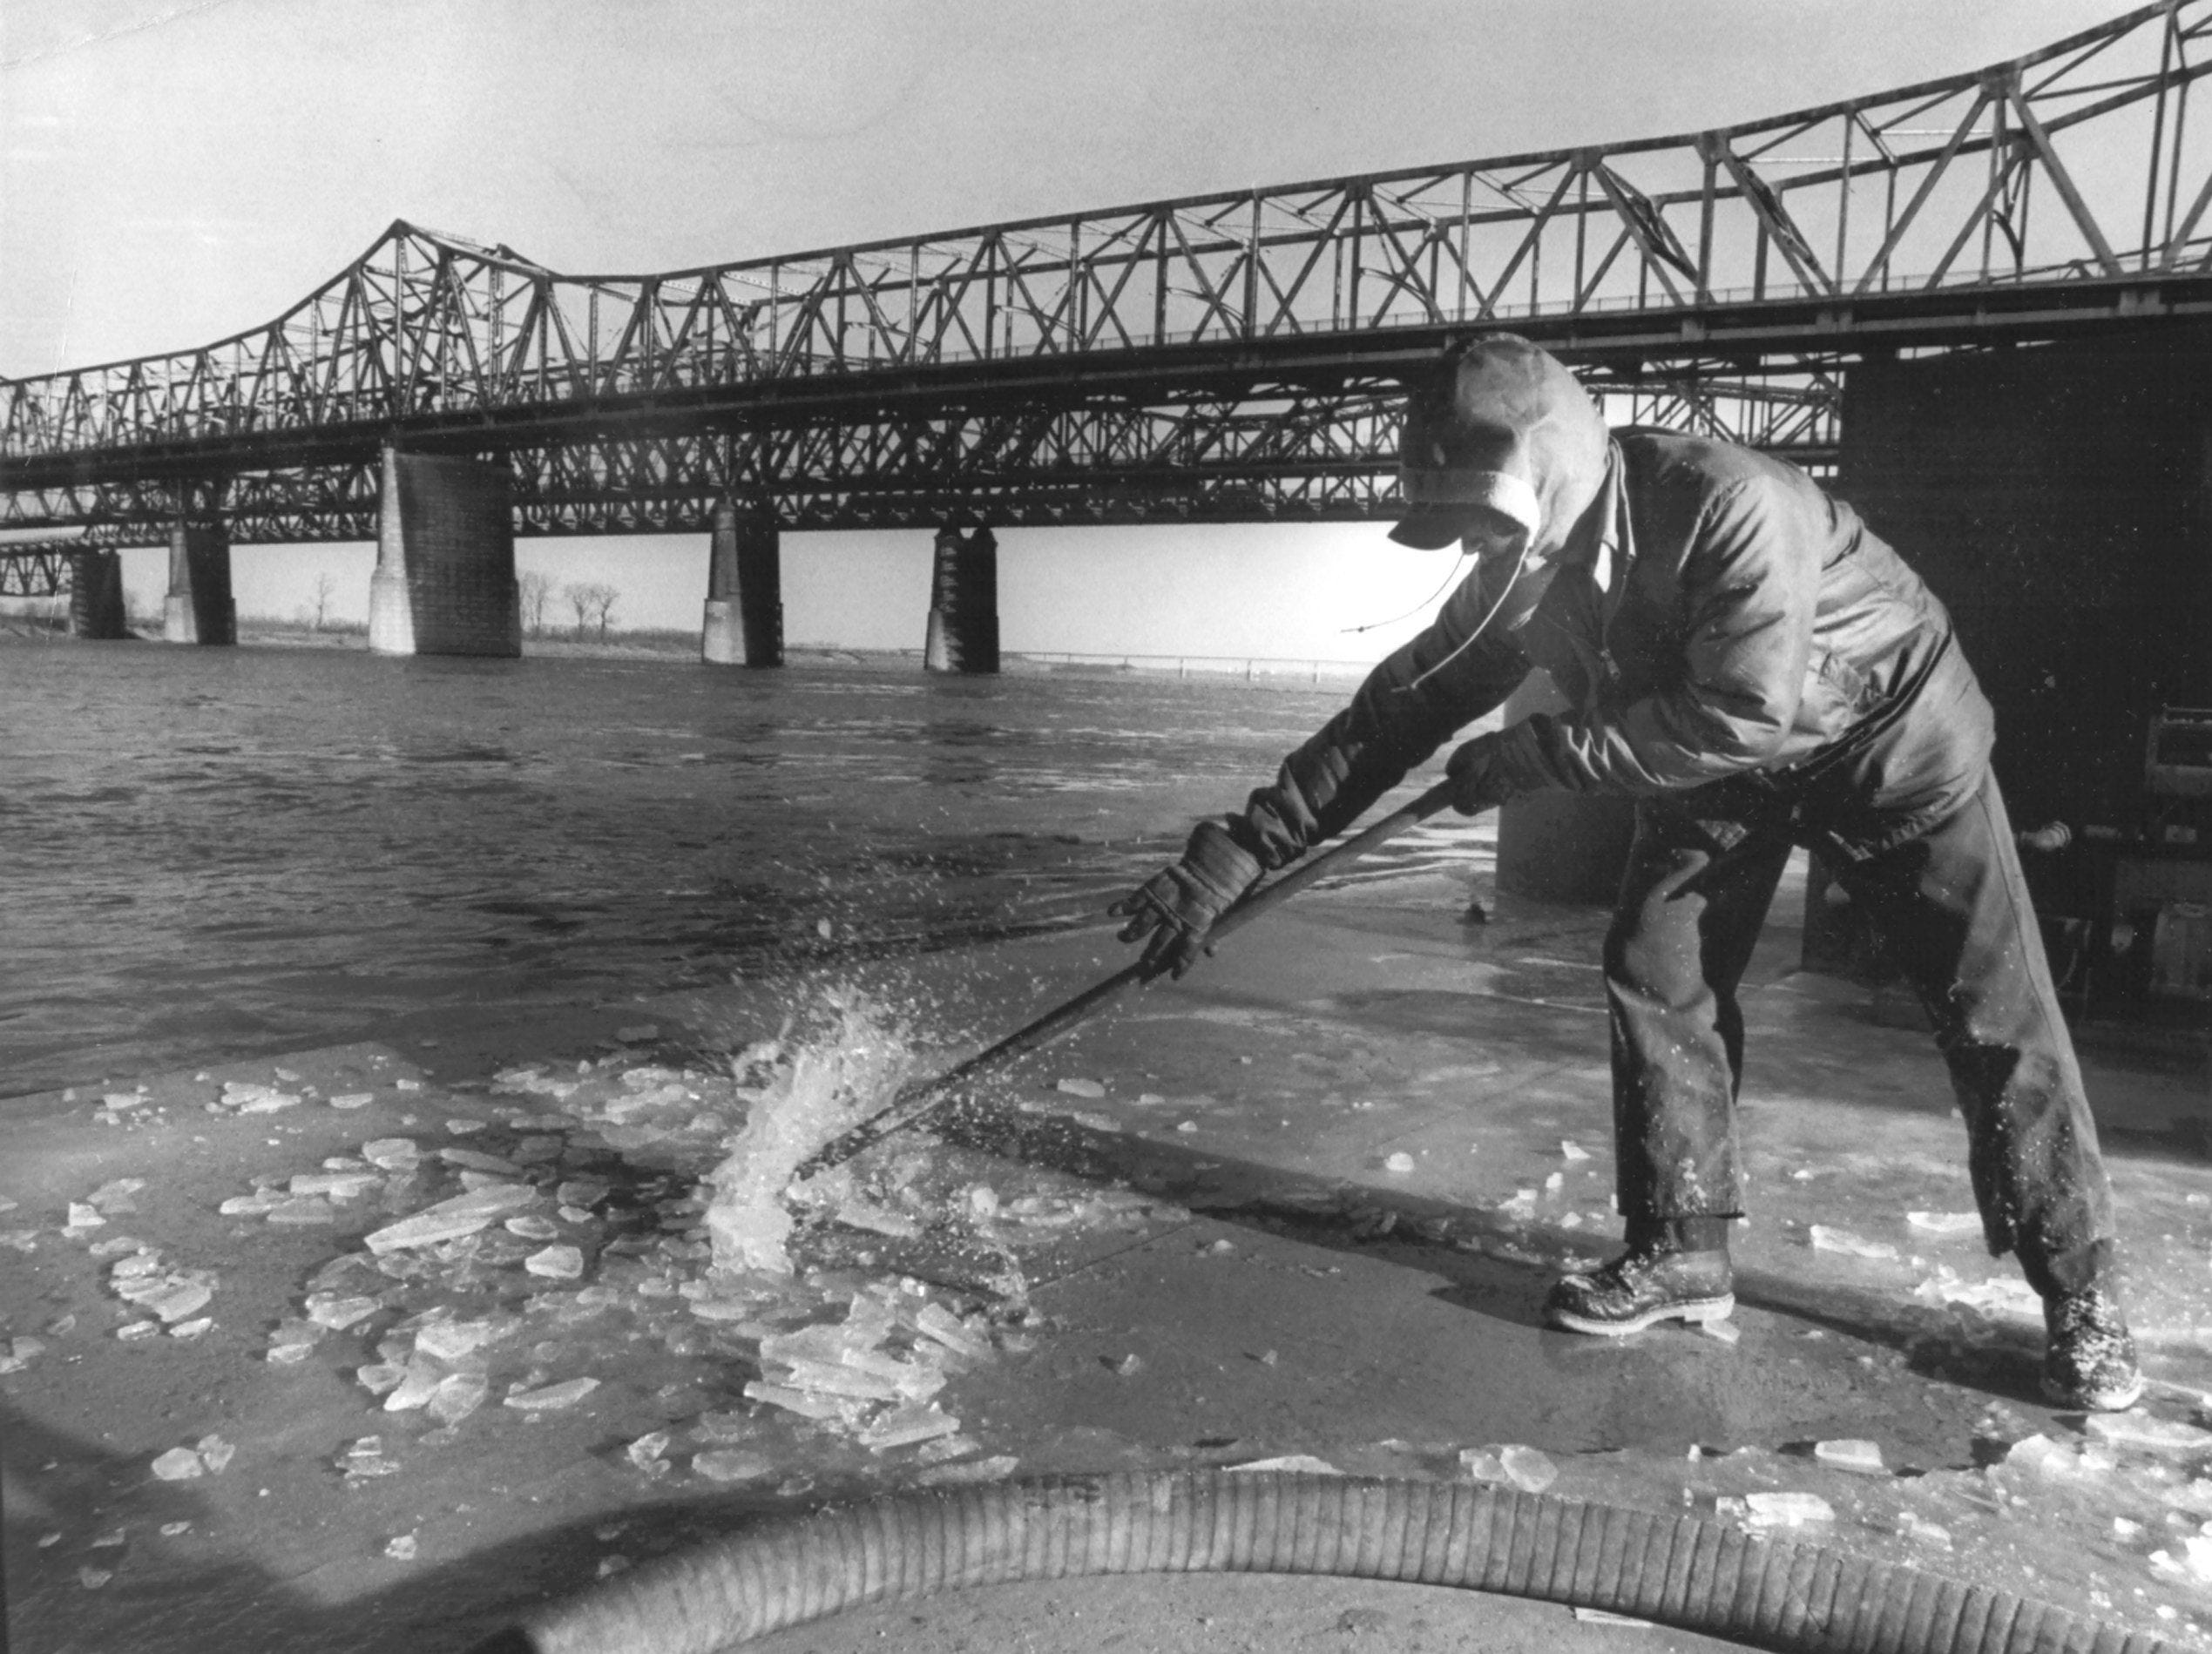 Cecil Starnes of Munford, TN chips ice off the deck of the fuel/water barge at Economy Boat Store at the foot of Illinois Avenue, just south of the Memphis & Arkansas Bridge on 9 Jan 1978.